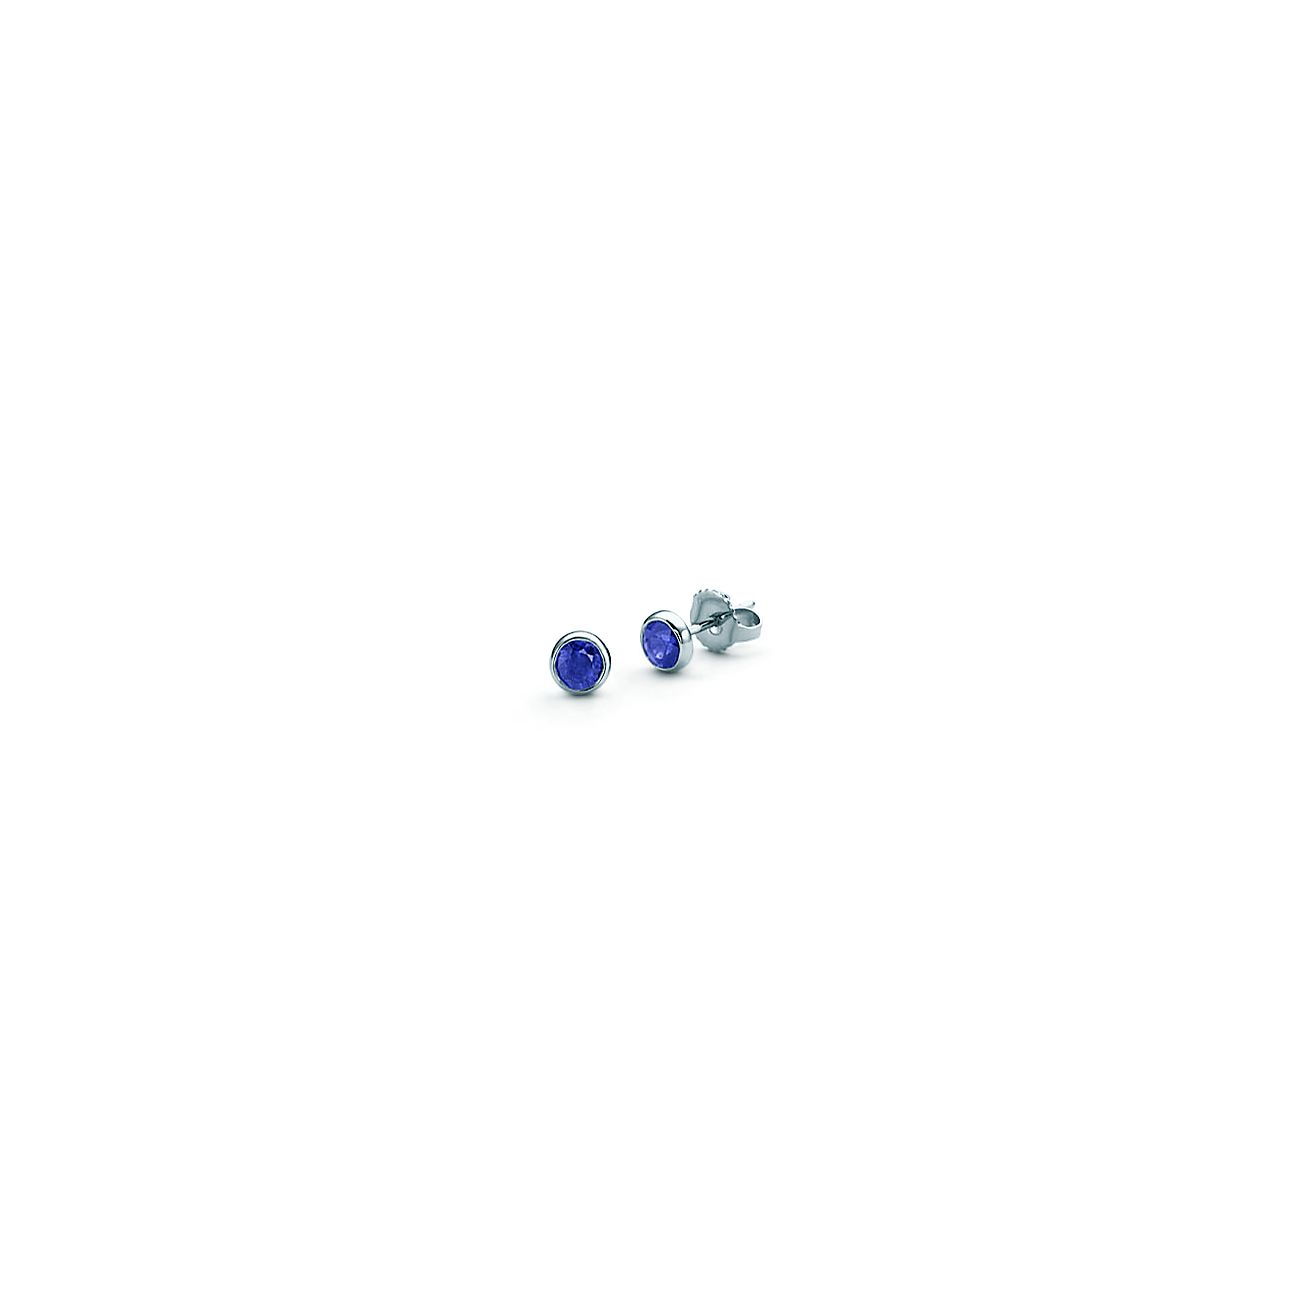 princess earrings jewelry cut bling cz ea blue silver sterling sapphire stud color